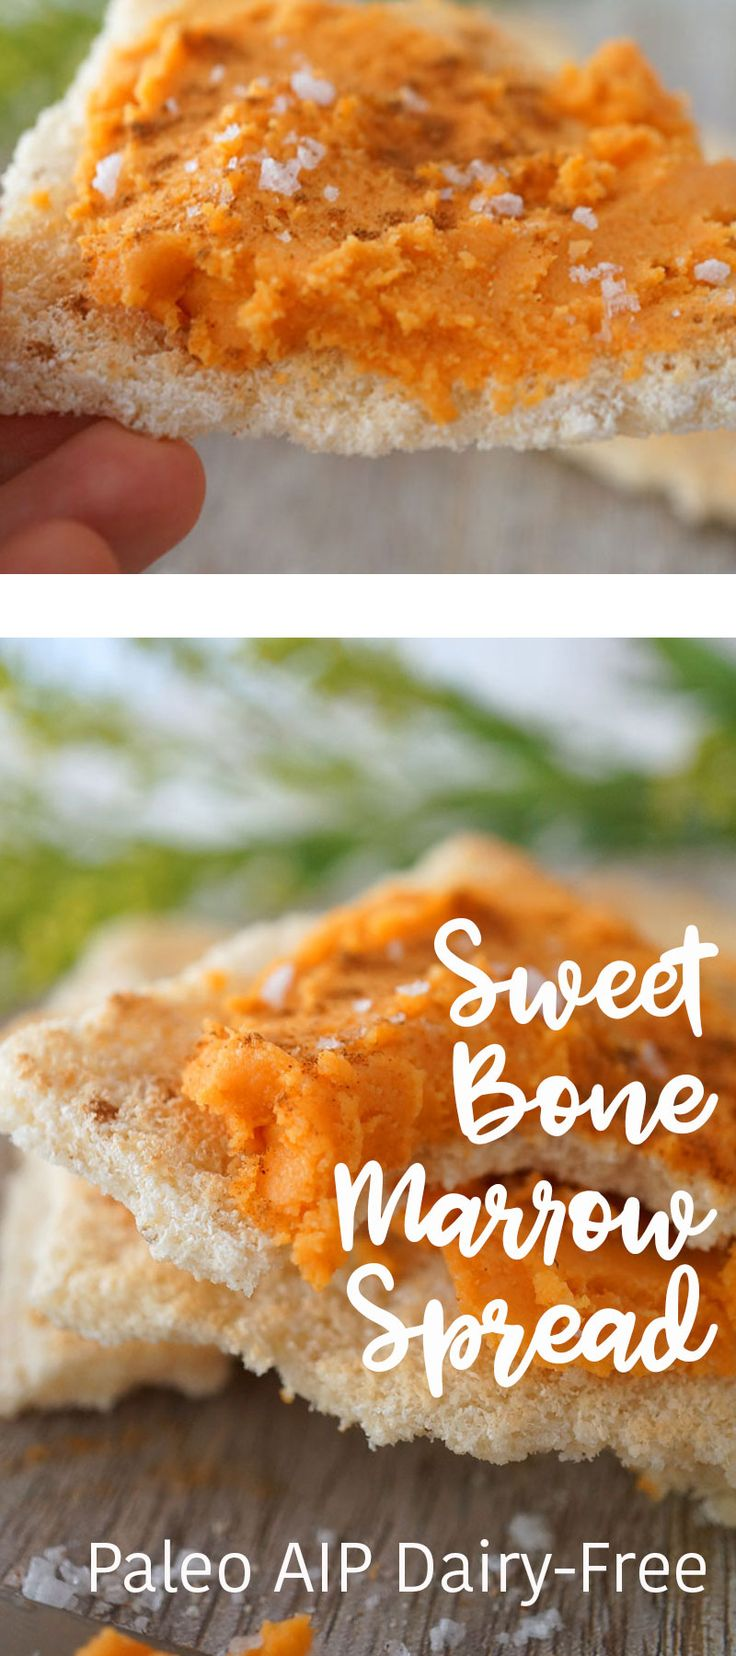 Sweet Bone Marrow Spread | Paleo AIP Whole30 | gut healing roasted bone marrow blended with sweet potato and coconut is sweet, savory & full of nutrients! Served on grain-free toast points!